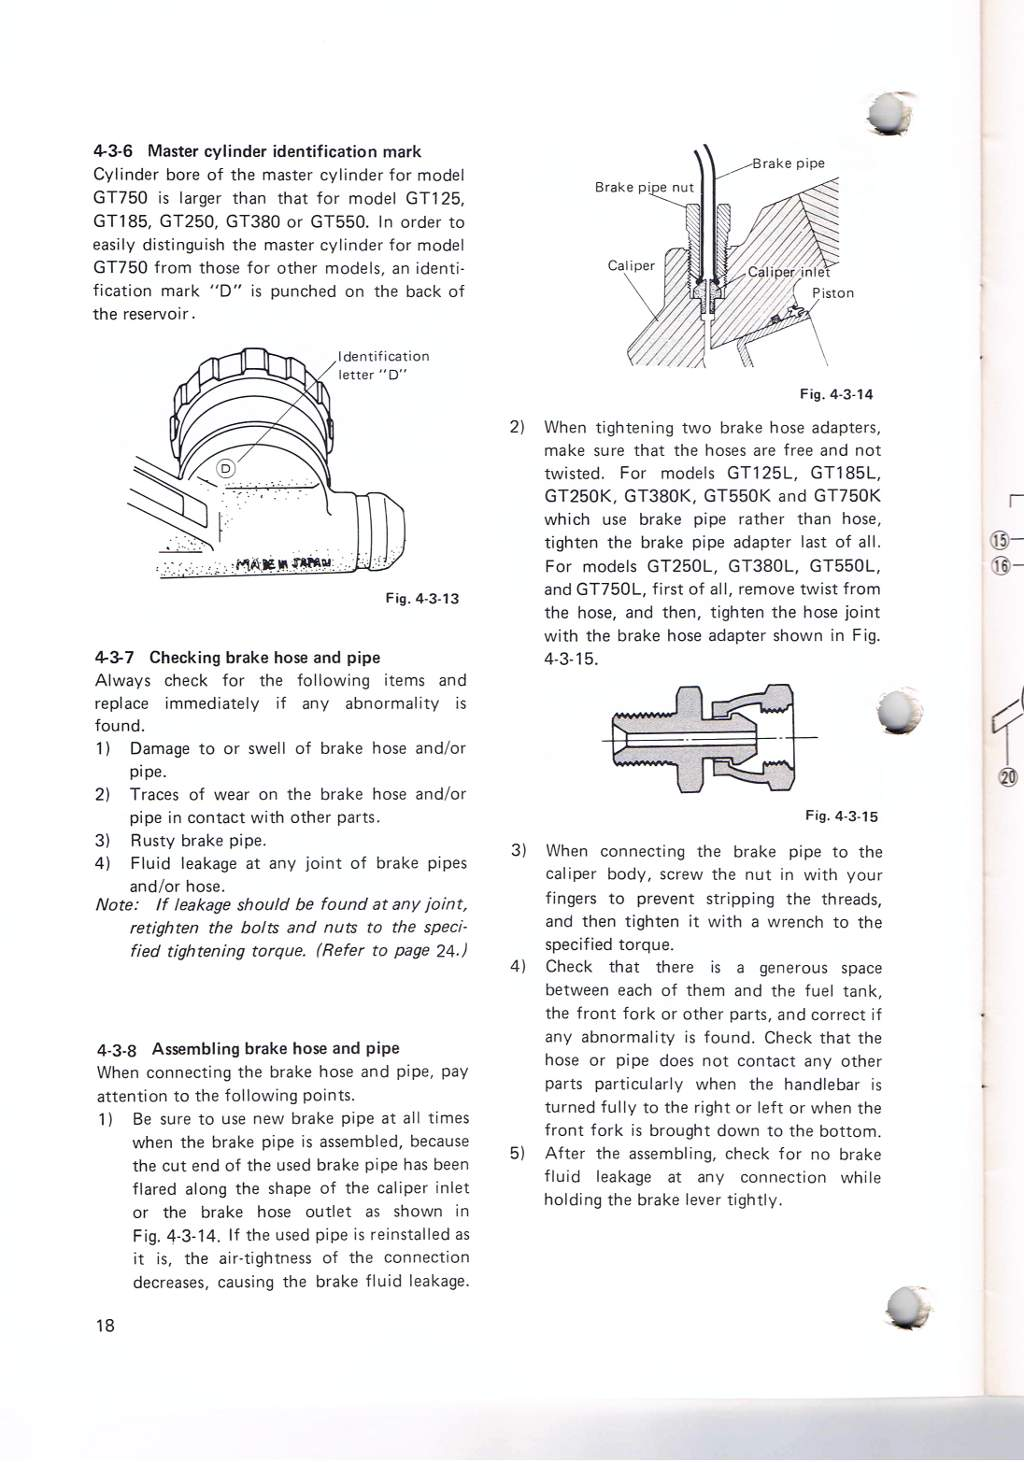 Manuals Home Page